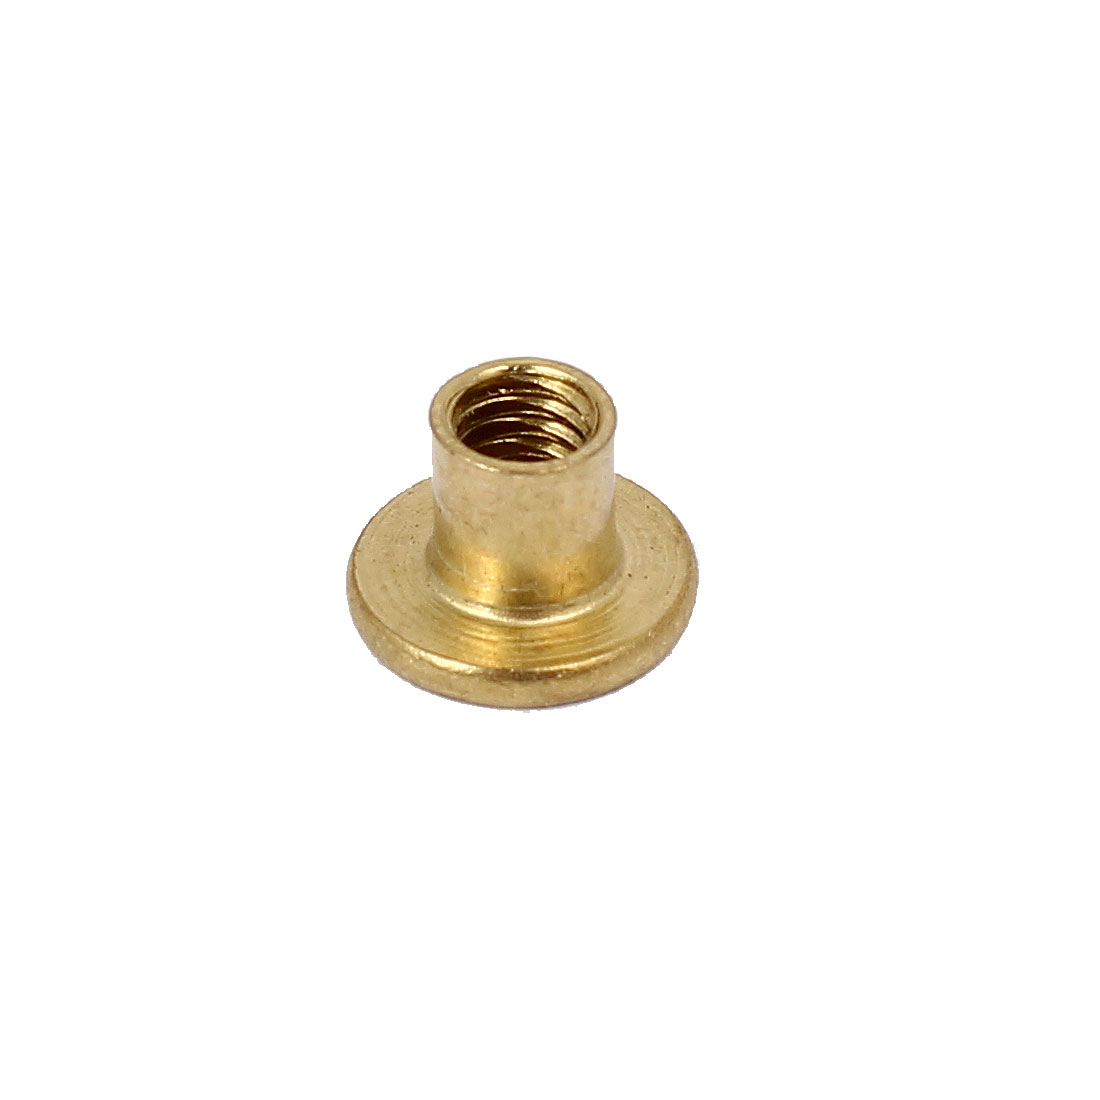 Photo Album Metal Brass Plated Binding Screw Post Barrel Nut 5mmx5mm